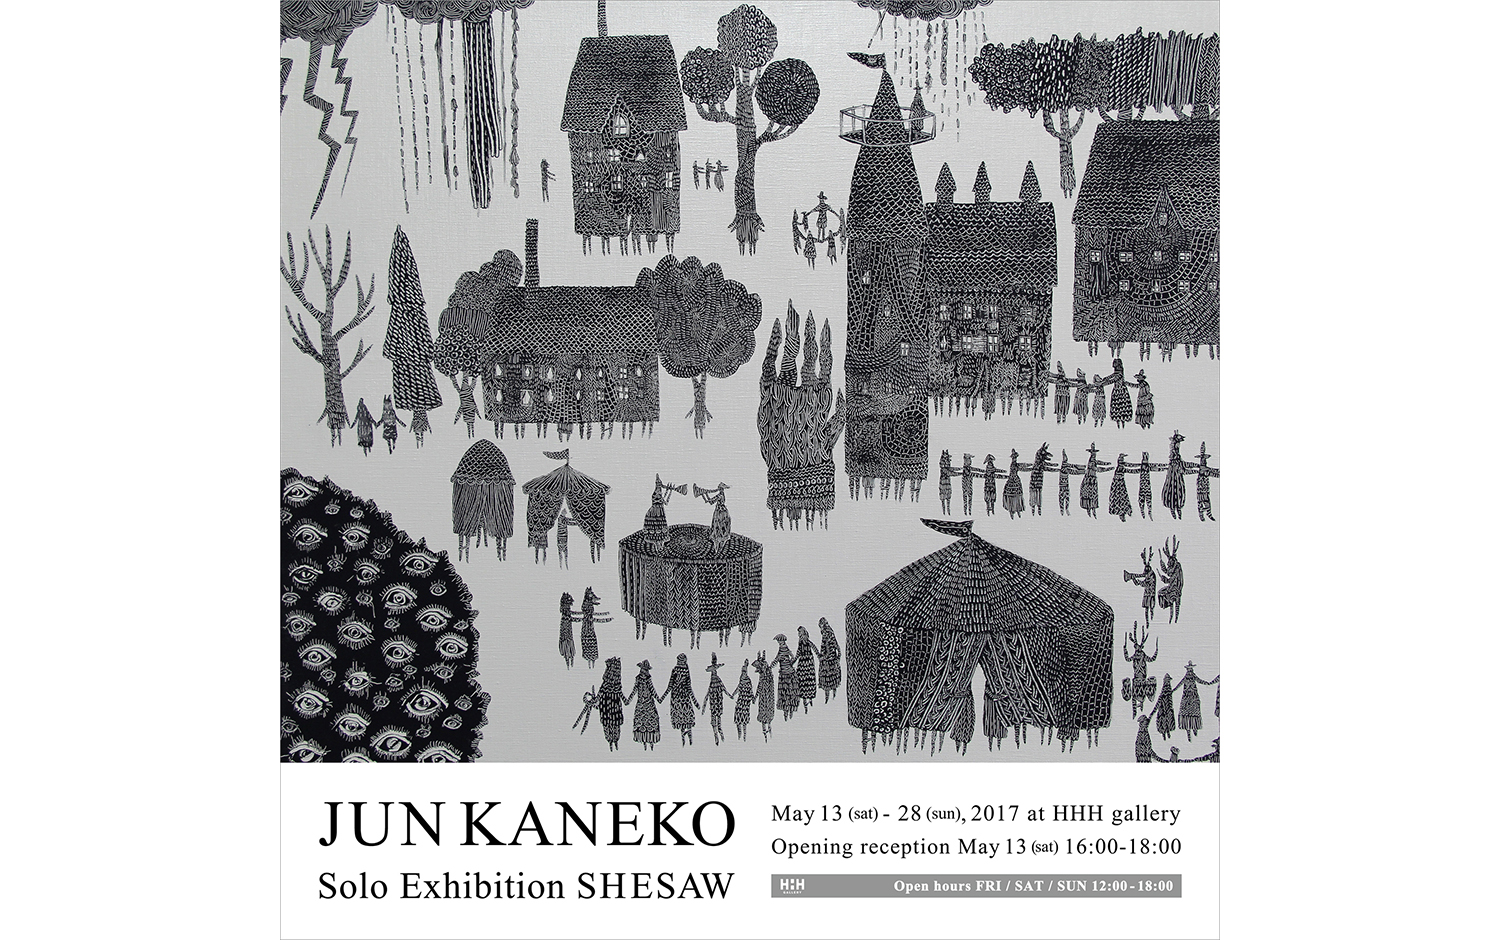 jun-kaneko-solo-exhibition-shesaw-1